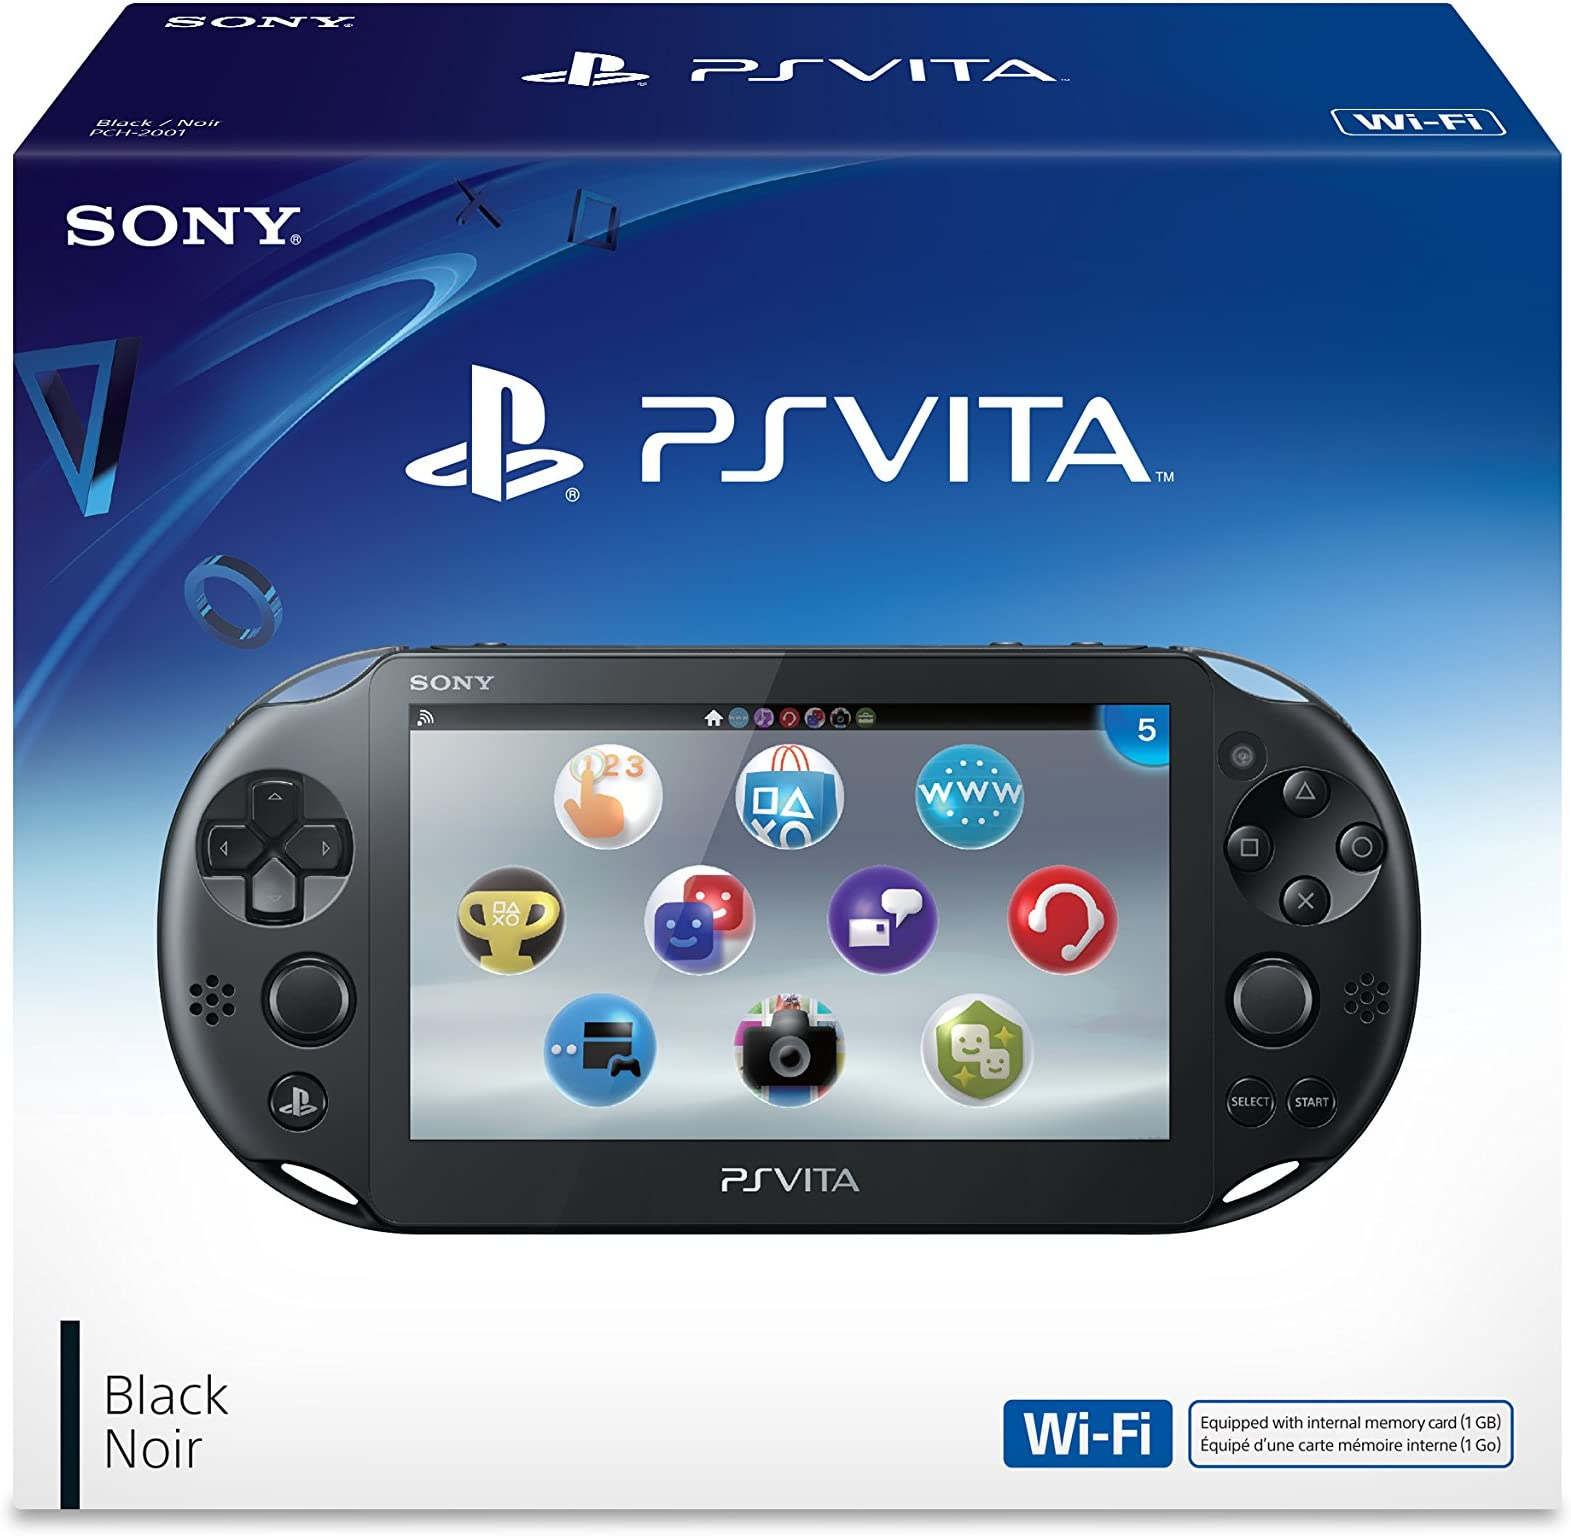 The Sony PlayStation Vita WiFi travel product recommended by Ebony Bagley on Lifney.